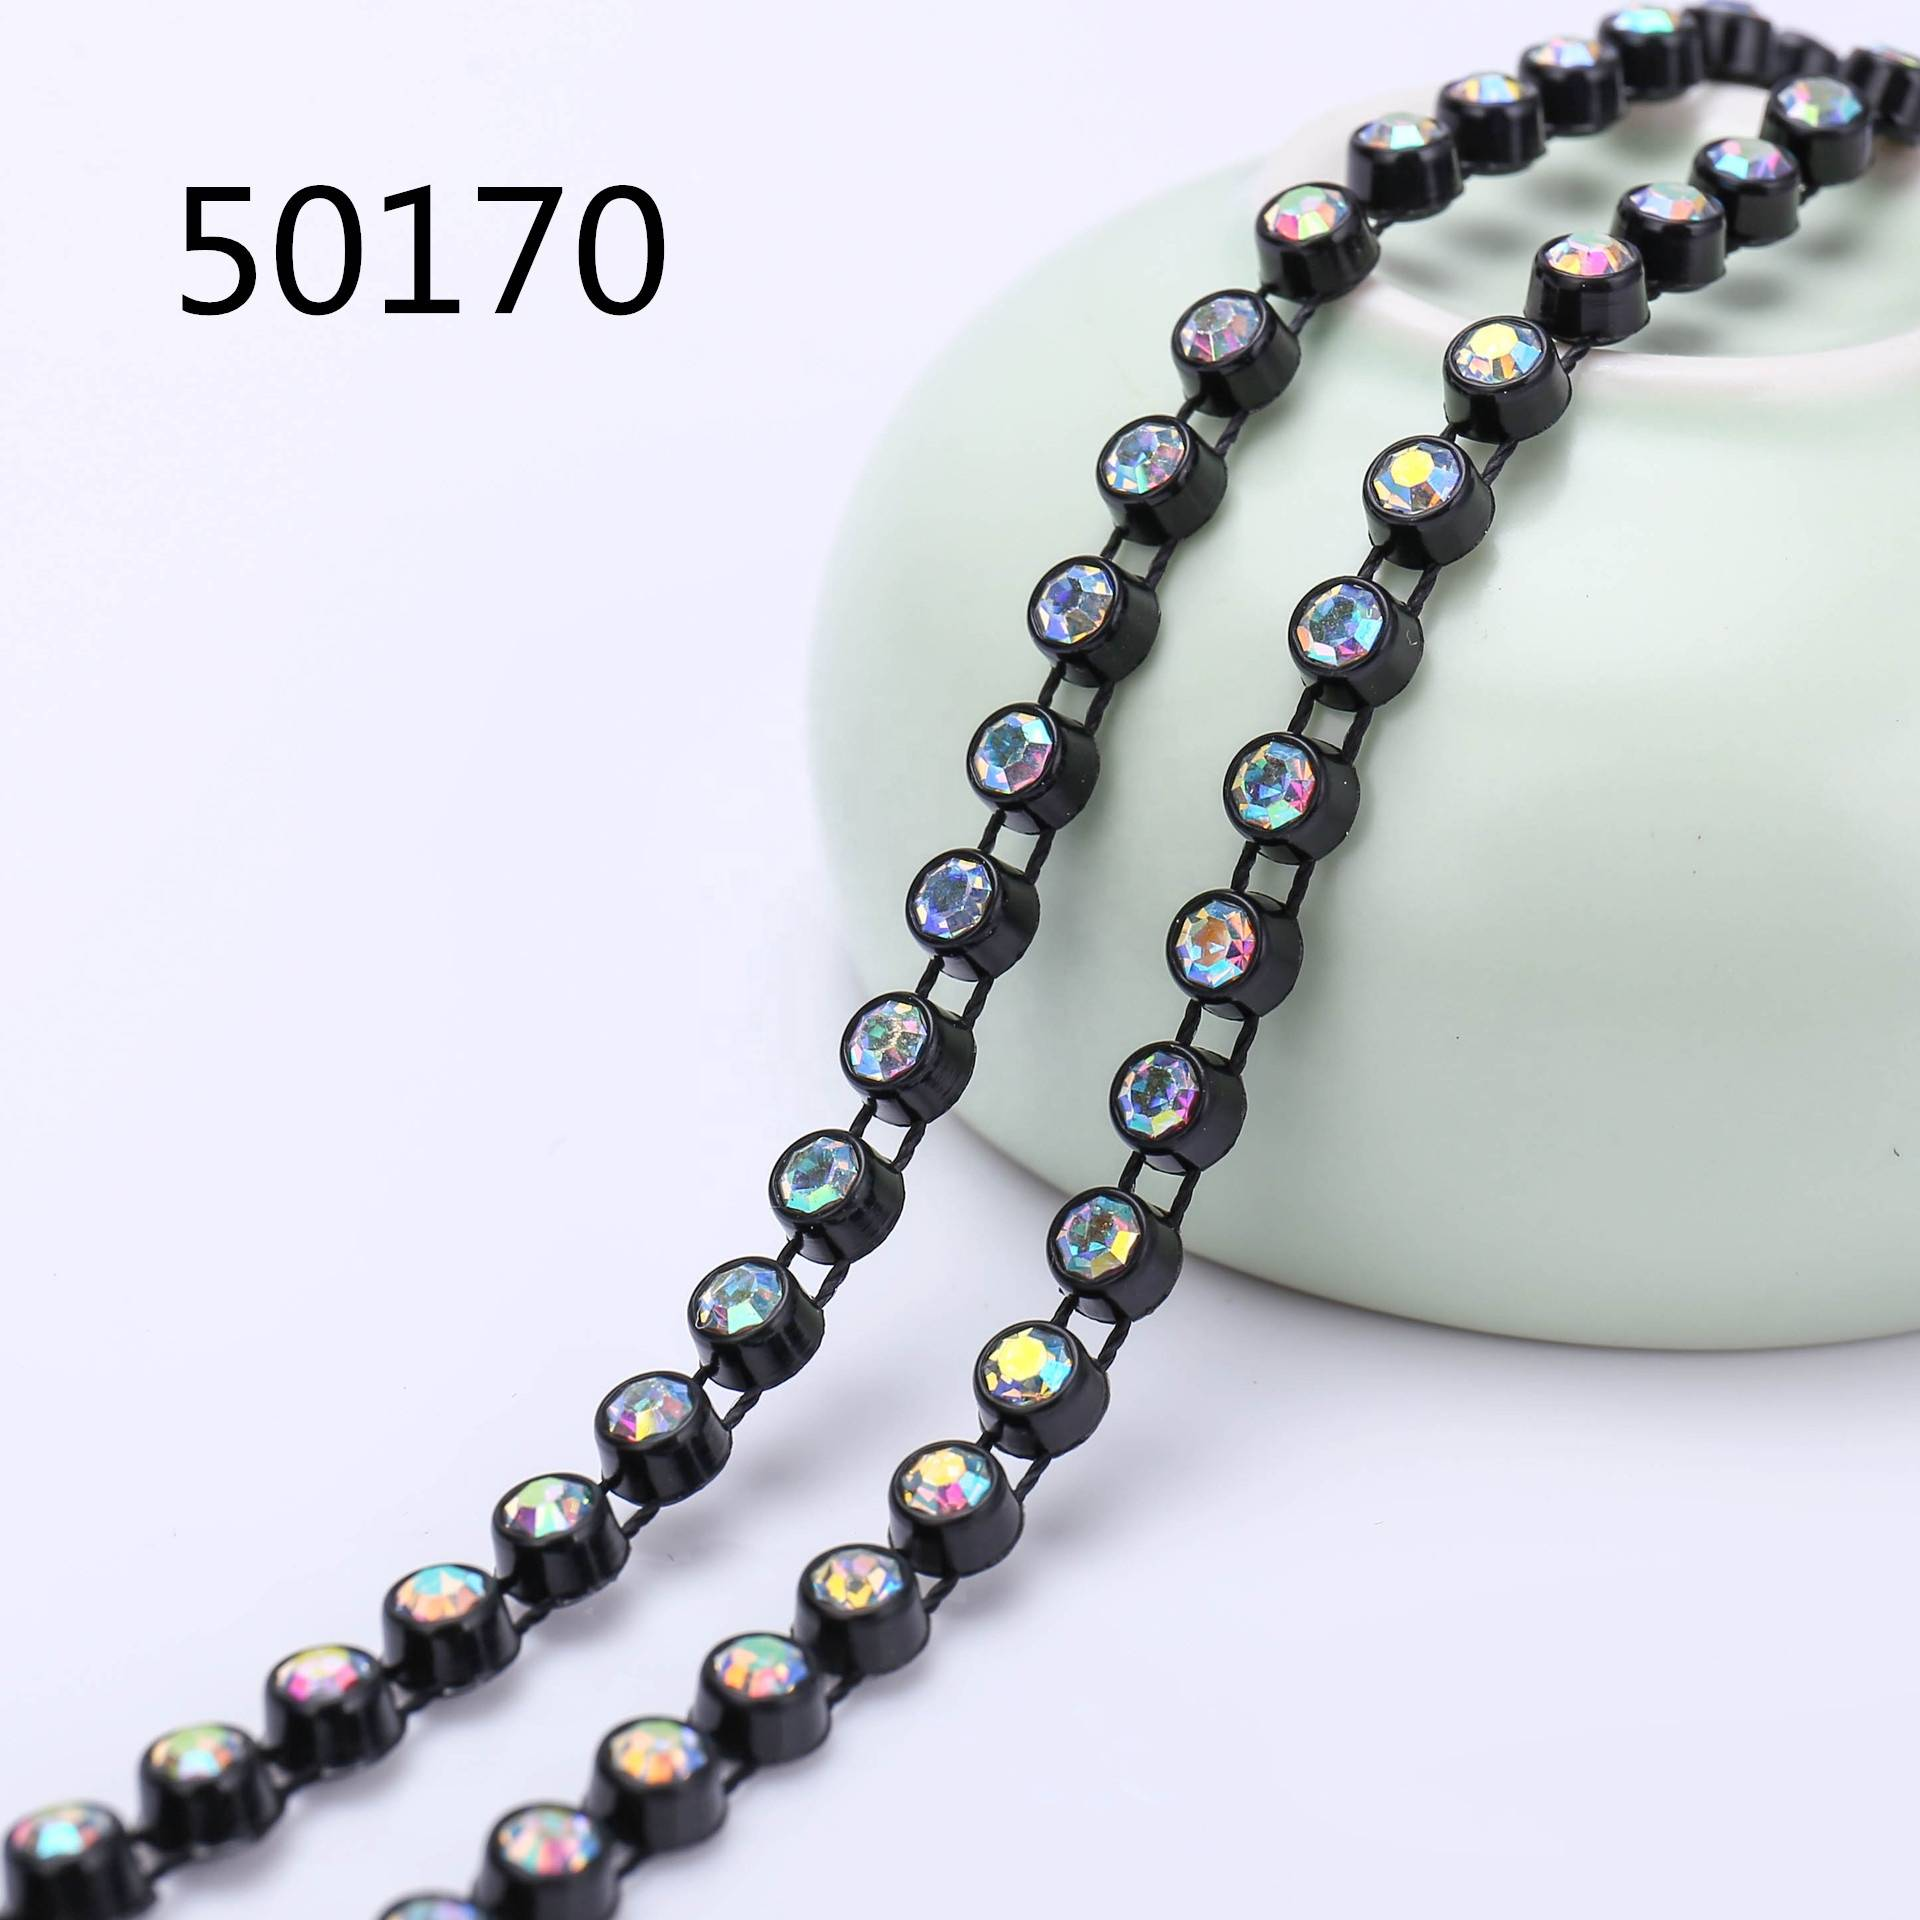 Better Quality Transparent Plastic Ss8 Handmade Collar Beaded Trim Crystal Black Setting Rhinestone Banding Trimming For Dress